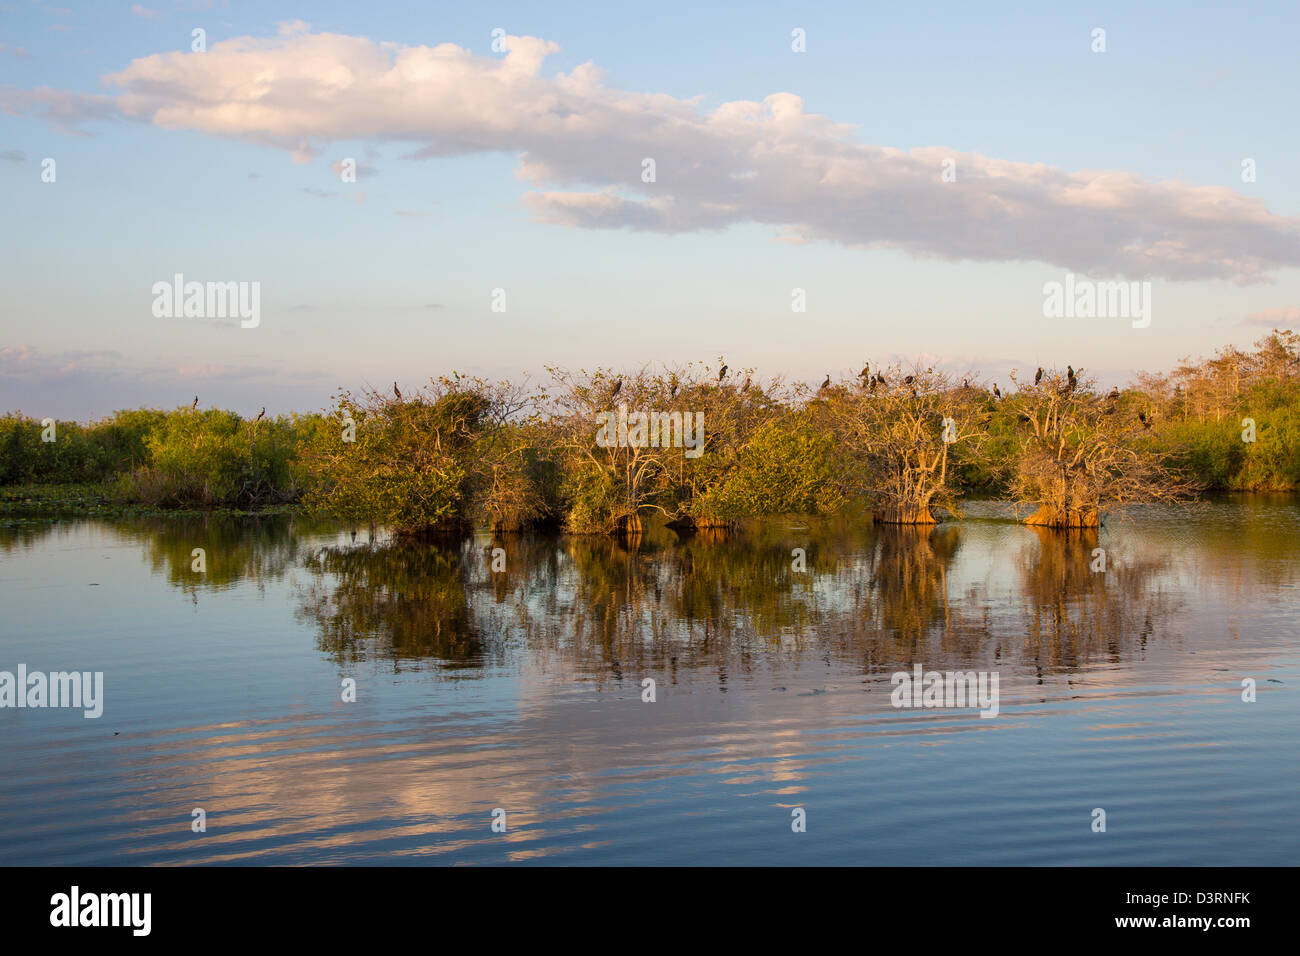 Birds in trees along Anhinga Trail at the Royal Palm Visitor Center in Everglades National Park Florida - Stock Image